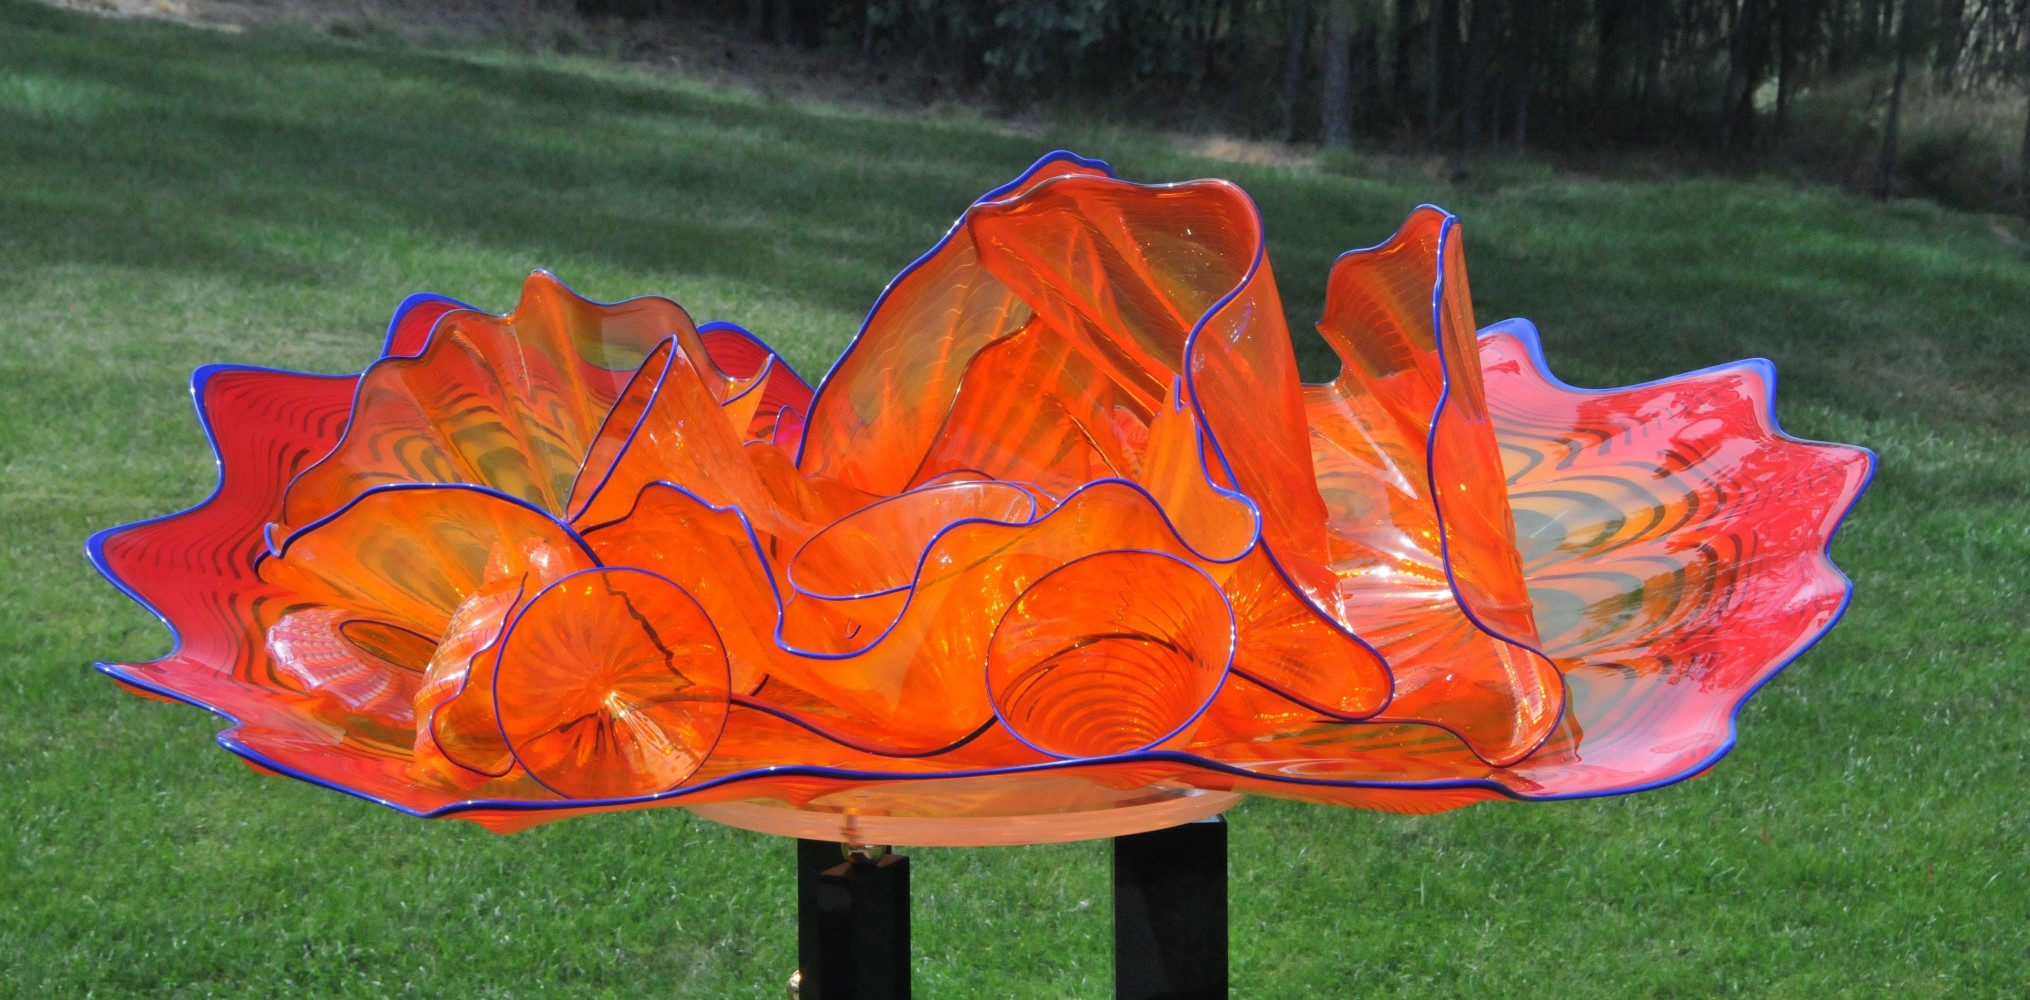 Dale chihuly art for sale dale chihuly aloadofball Gallery